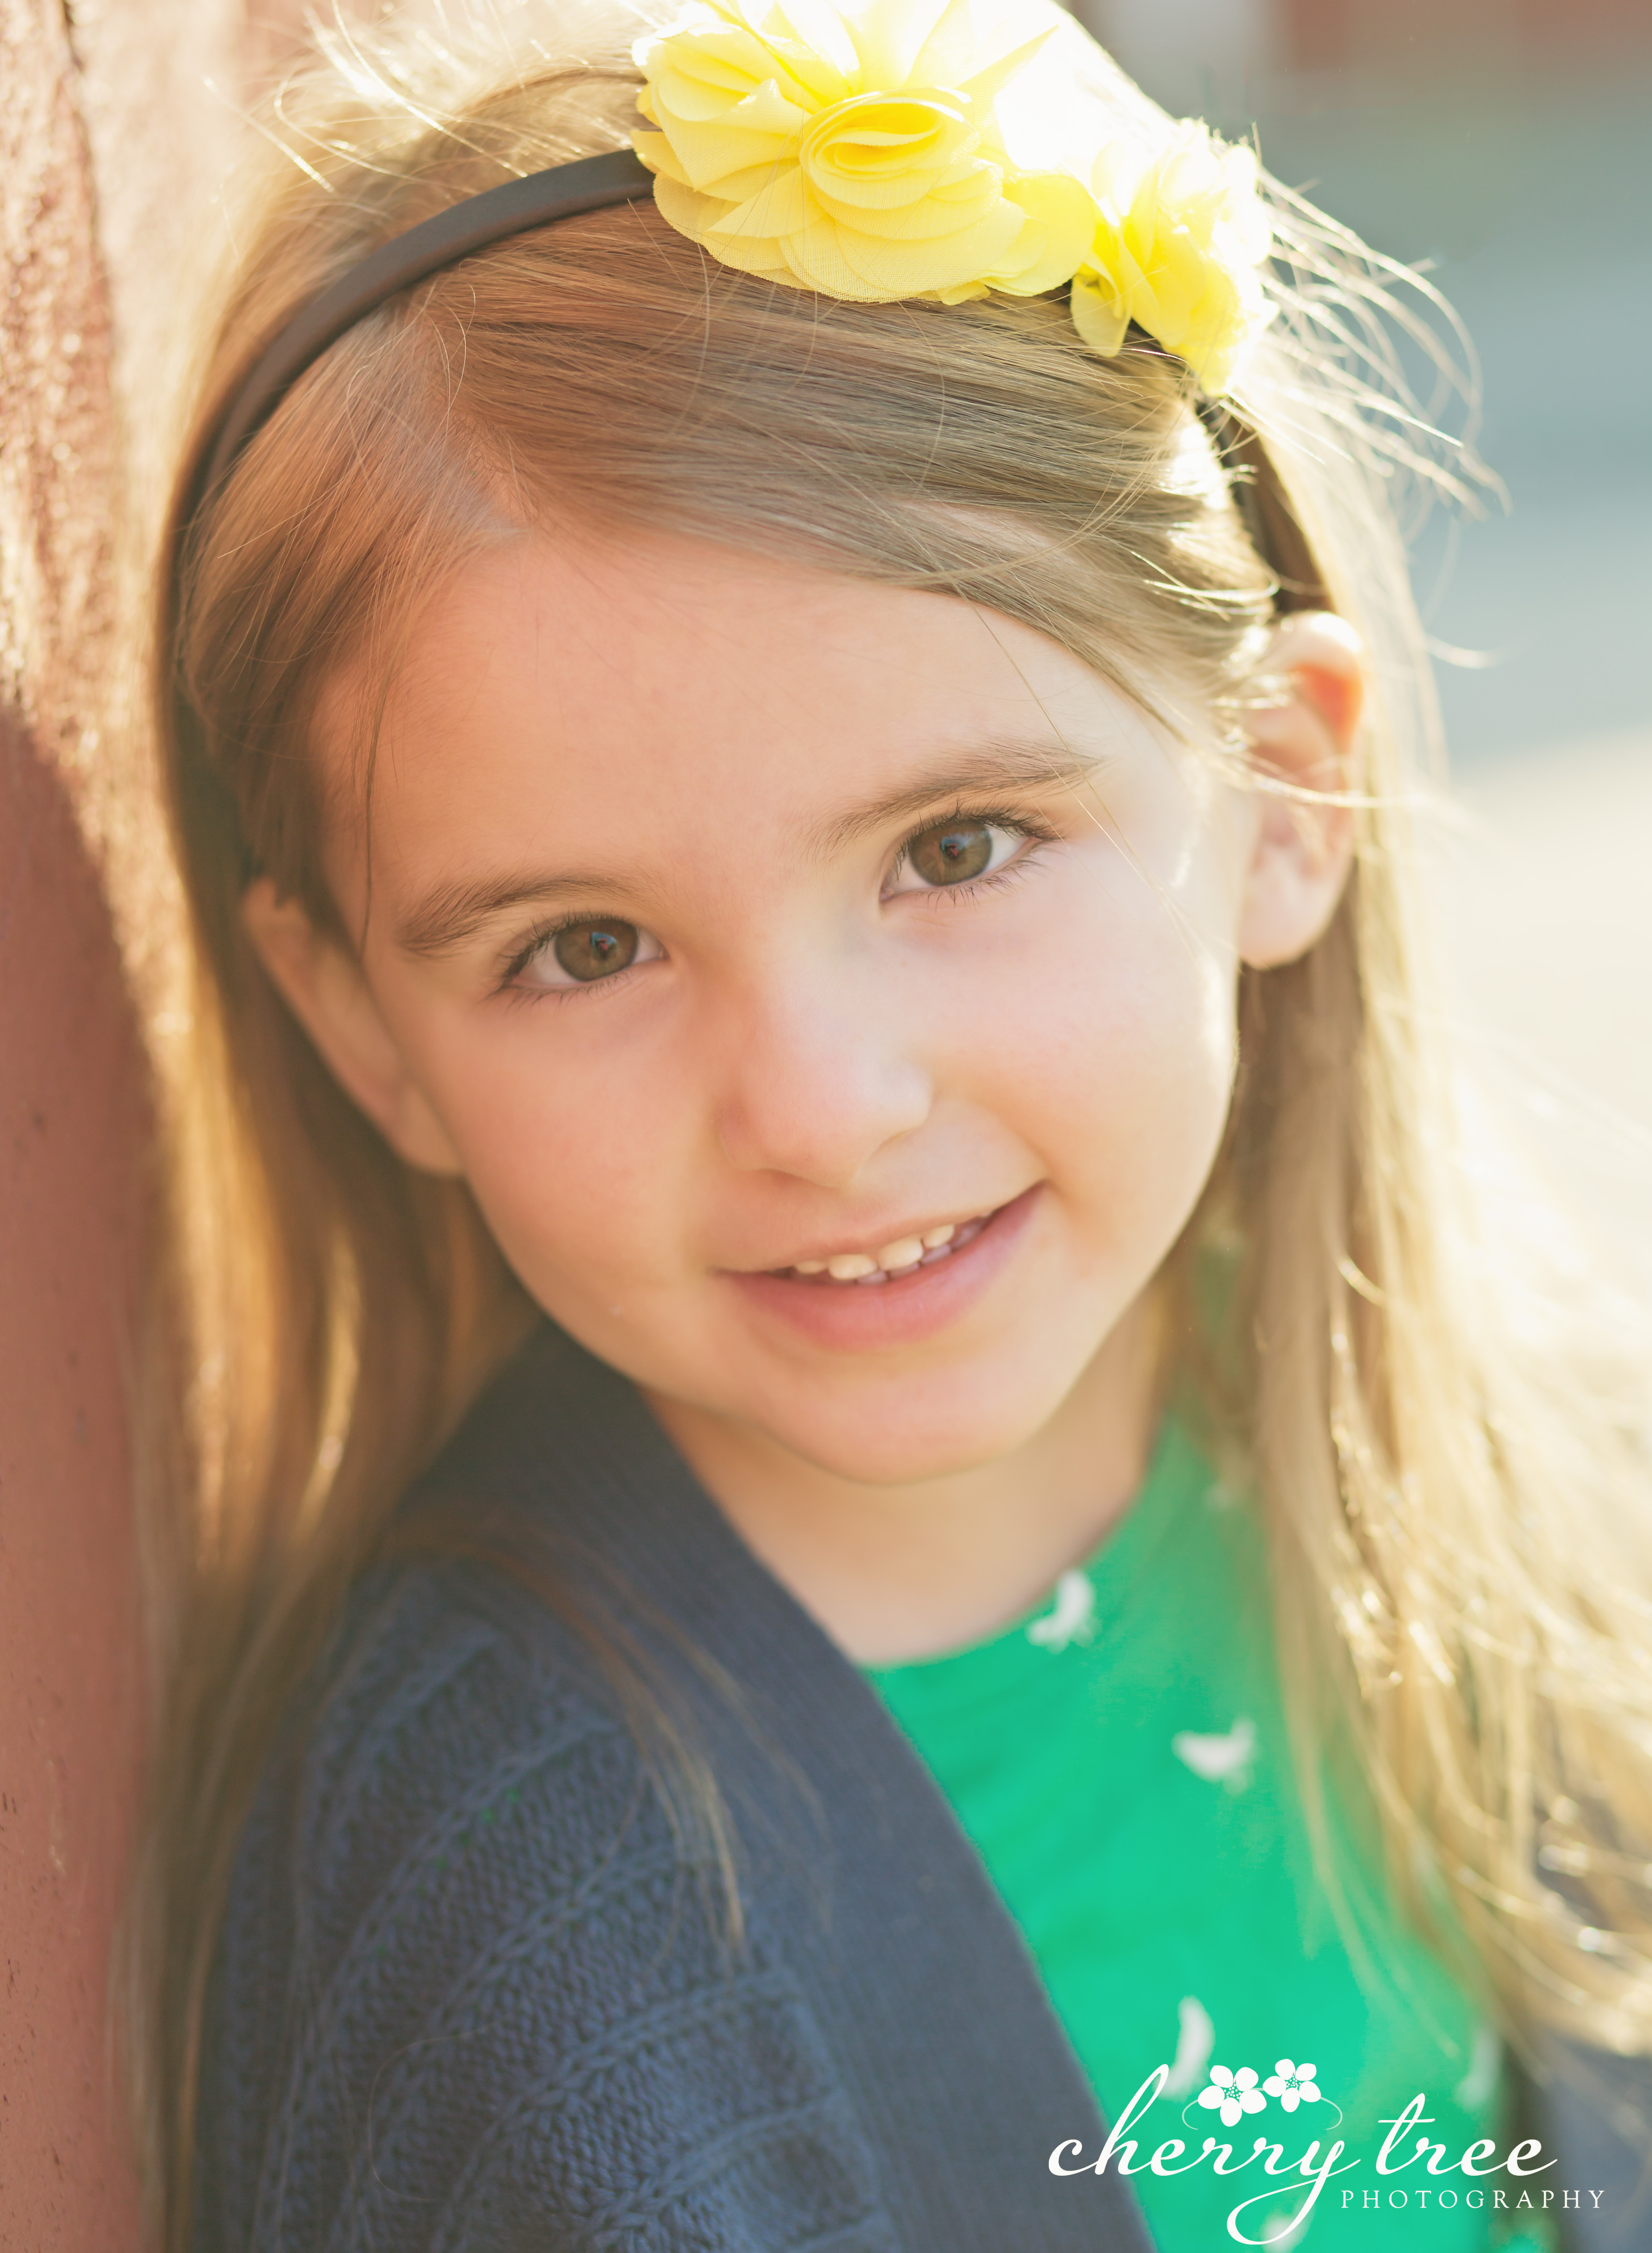 Four Year Two Year Community: 4 Years Old… » Cherry Tree Photography